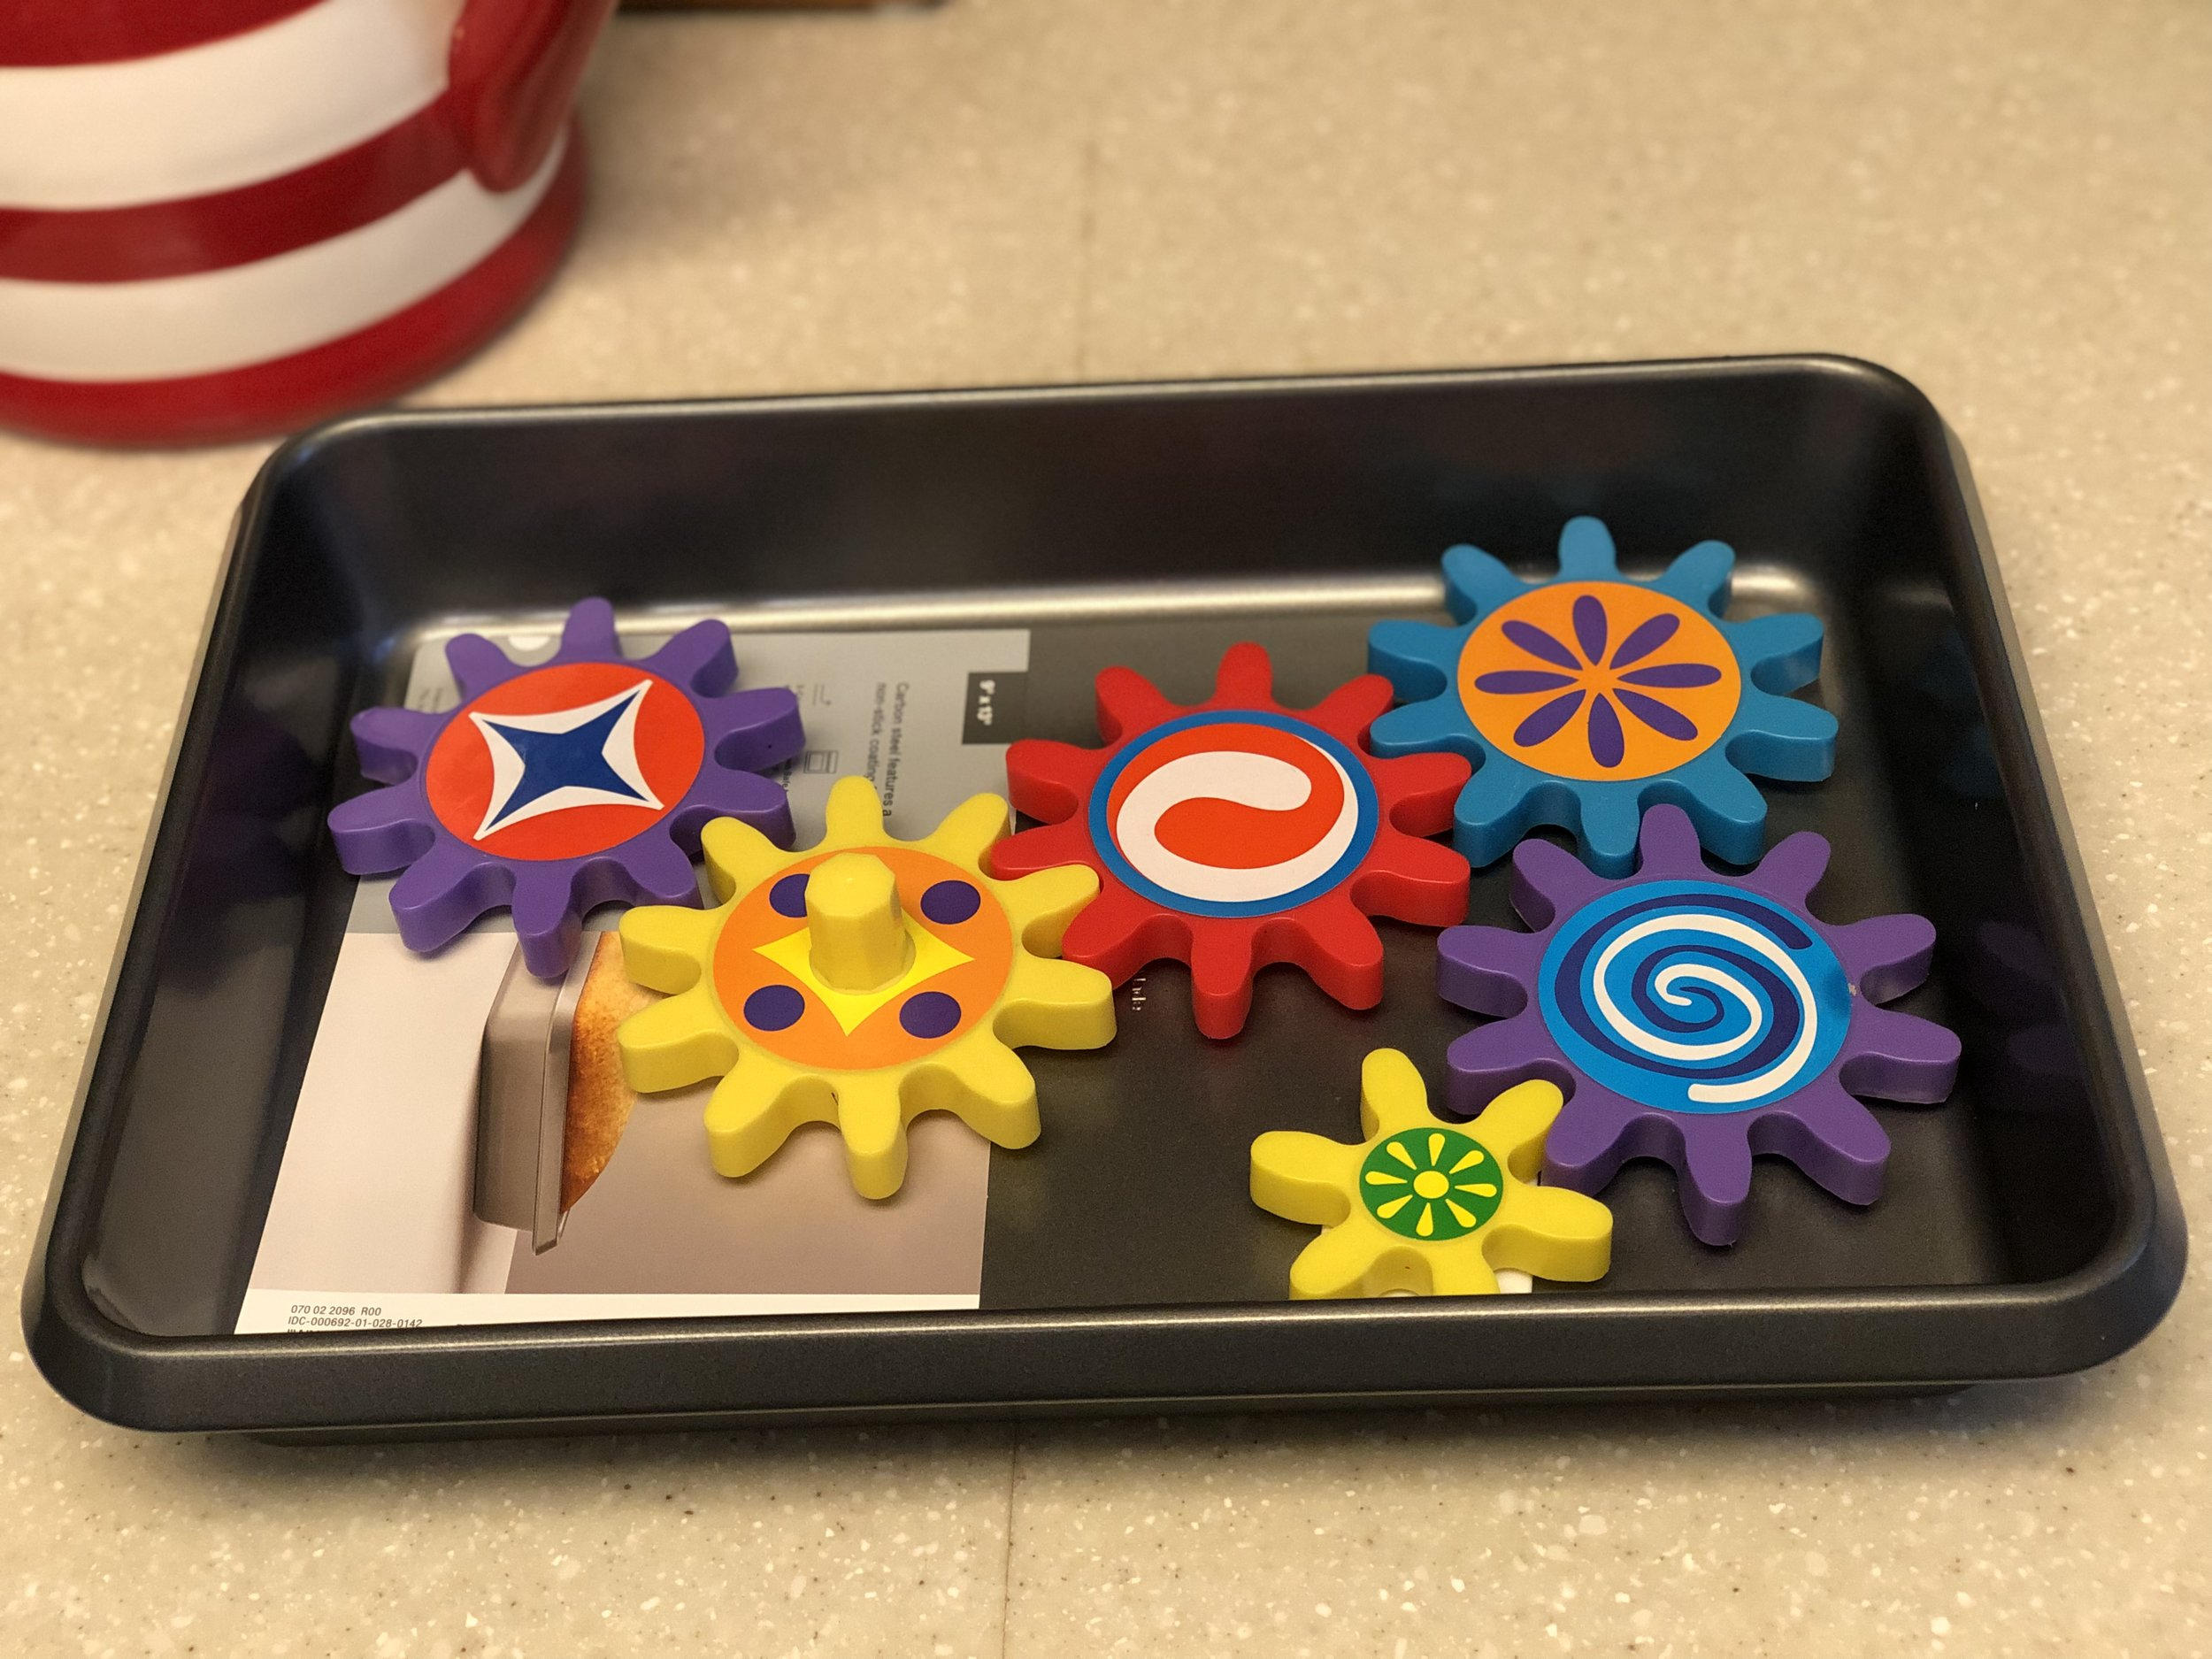 This is a cake pan with a few of the magnetic gears in them. Super fun and easy for kids to do with minimal mess. Also, parenting hack here, this is great for doctors offices, car rides, and airplanes too!